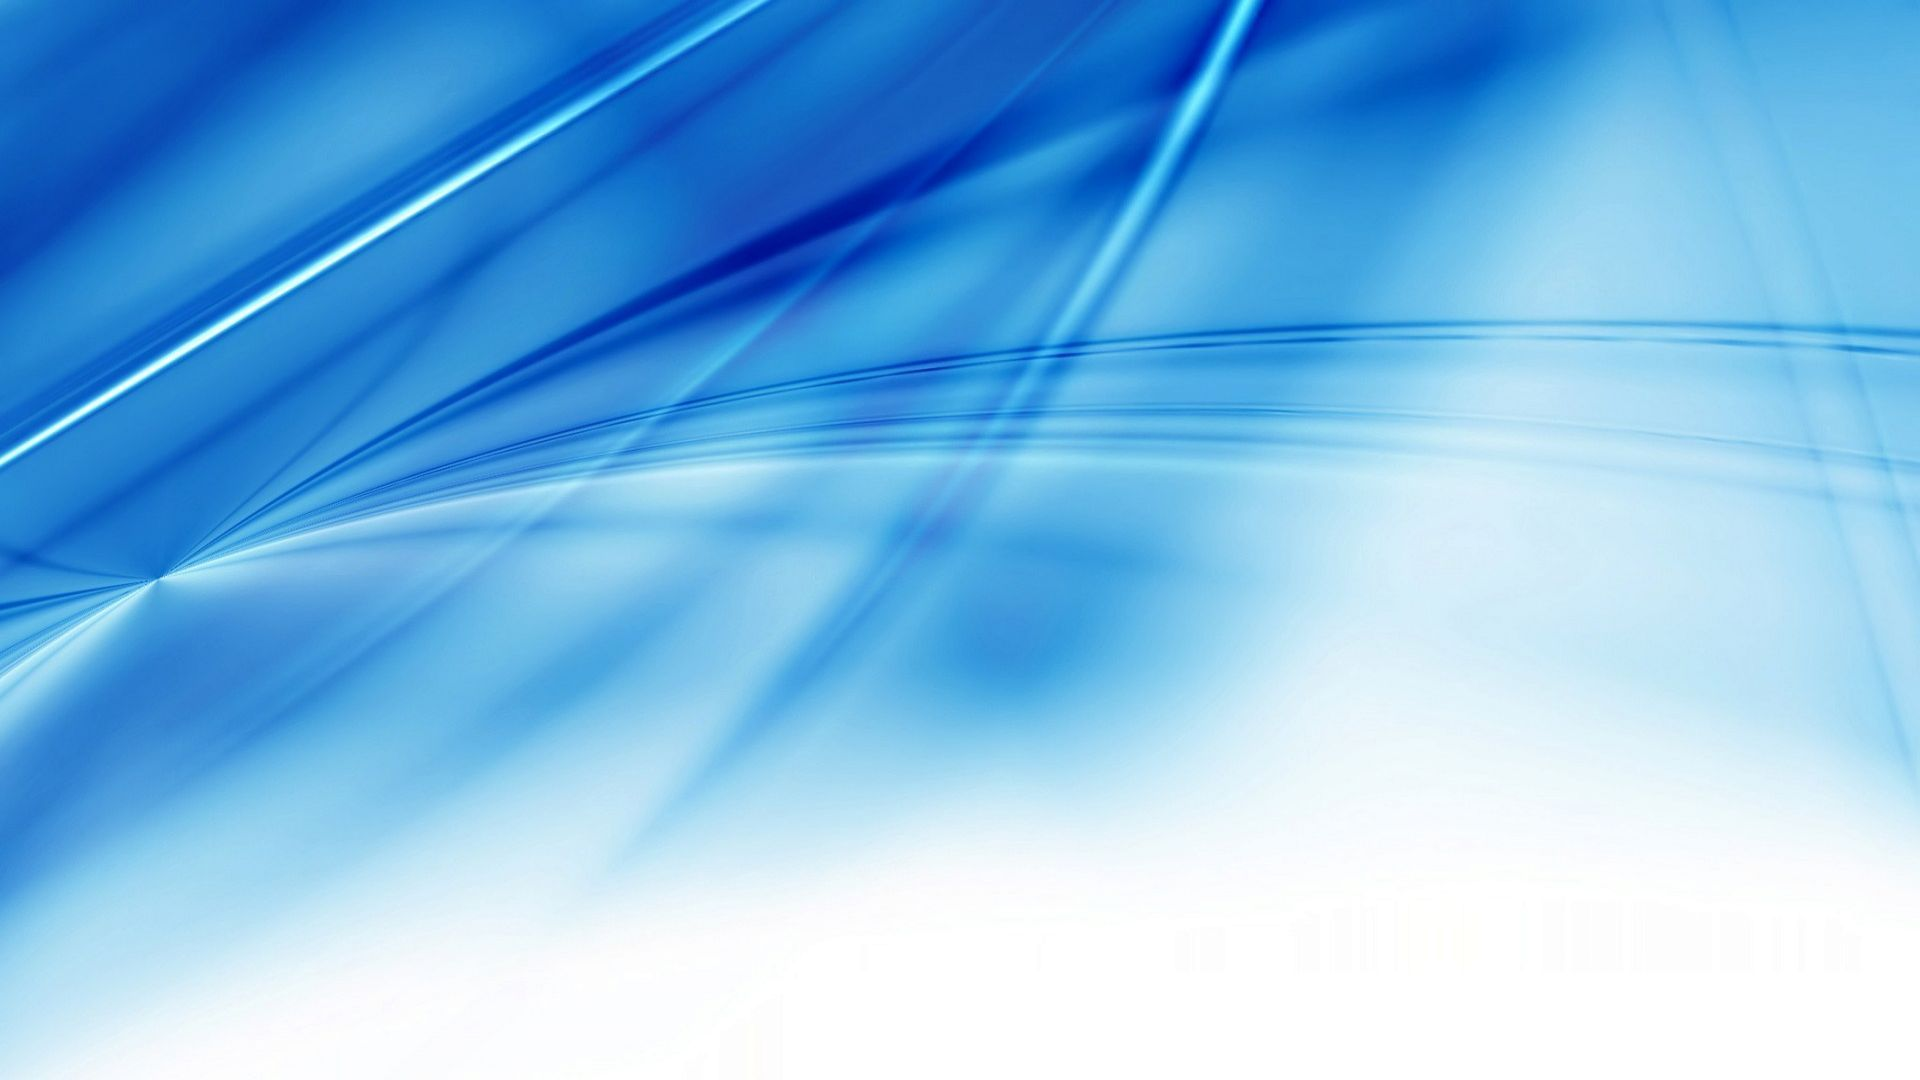 Blue and White Wallpaper 2140